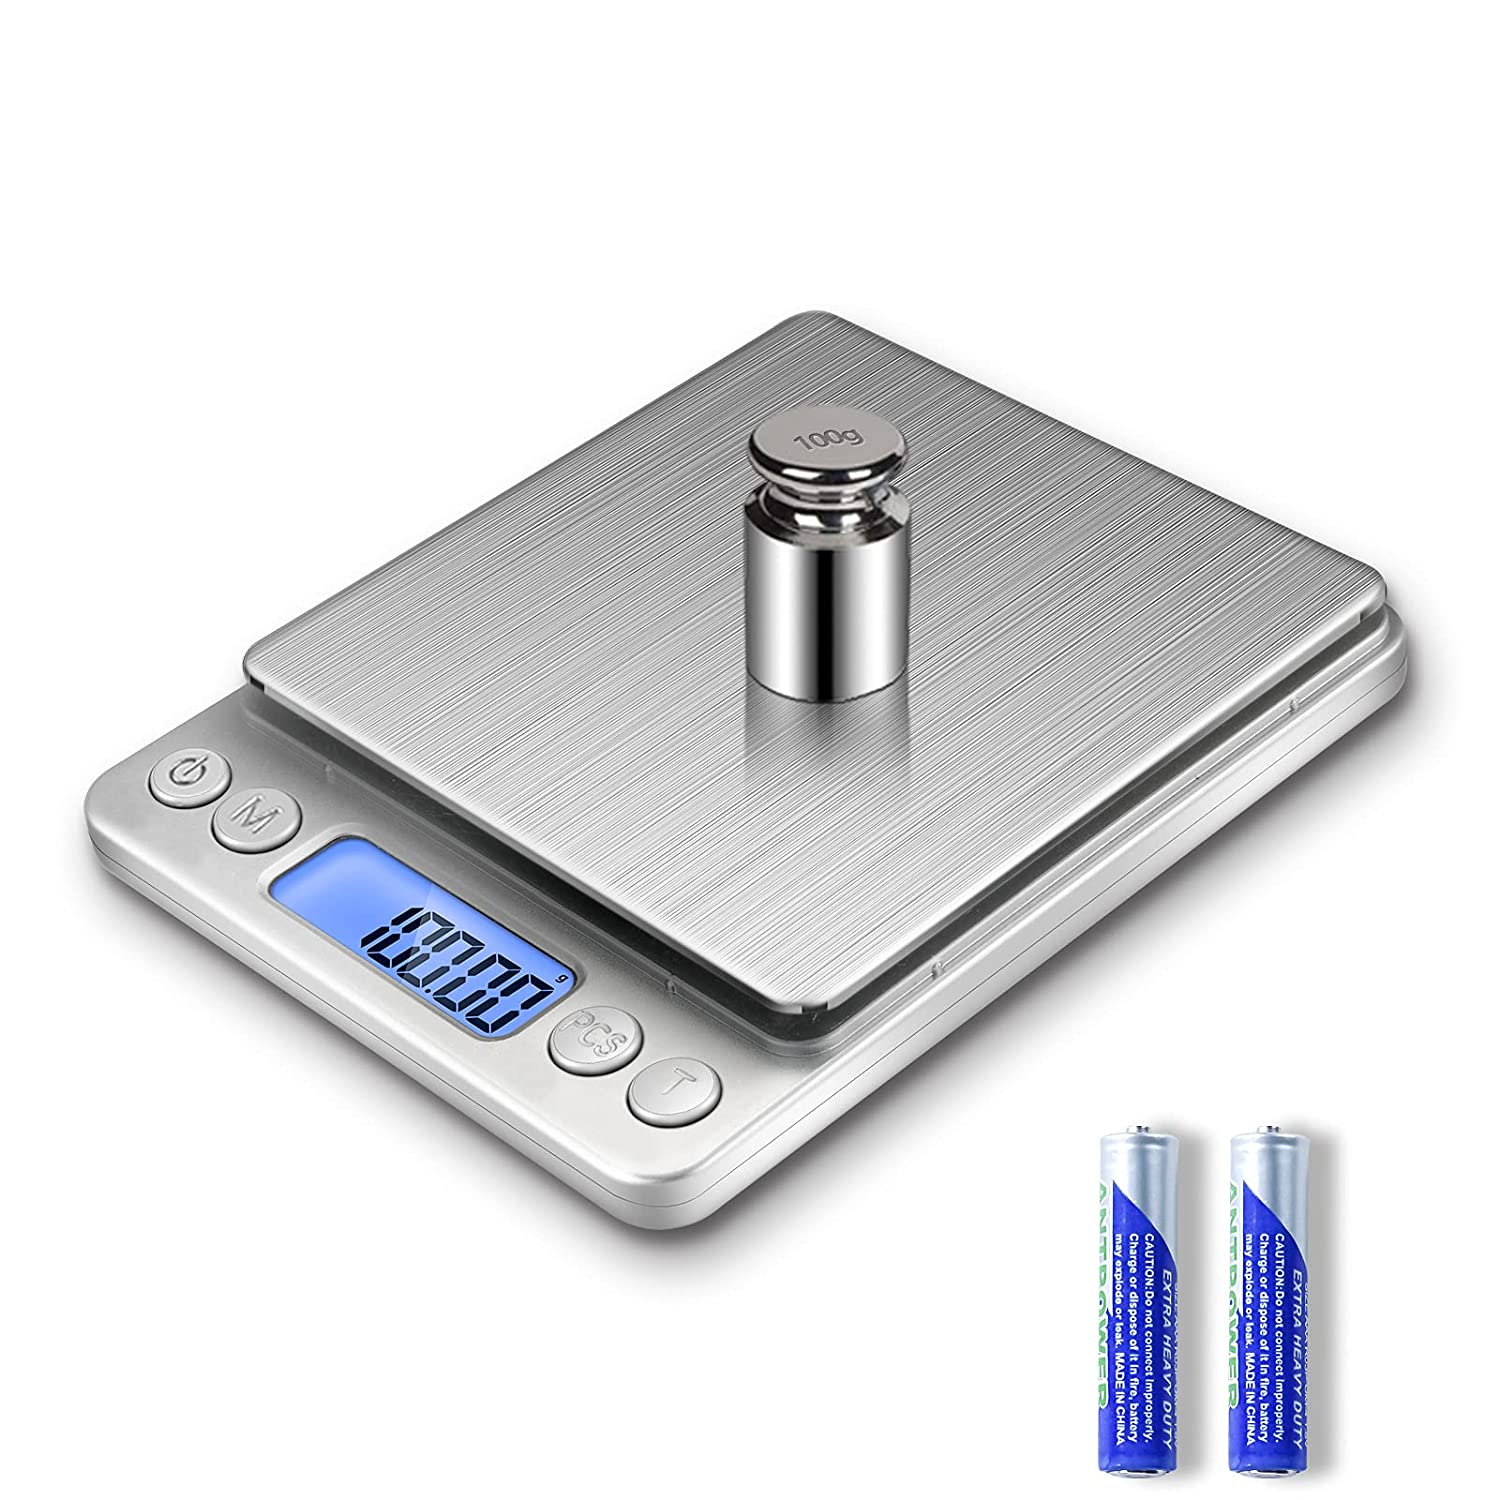 Food Scale Digital Kitchen Scale, MEIYA 500g/0.01g Gram Scales, Suitable for Jewelry, Baking, Soap Making, 9 Units, Tare Function, Automatic Calibration, LCD Display, Including Battery